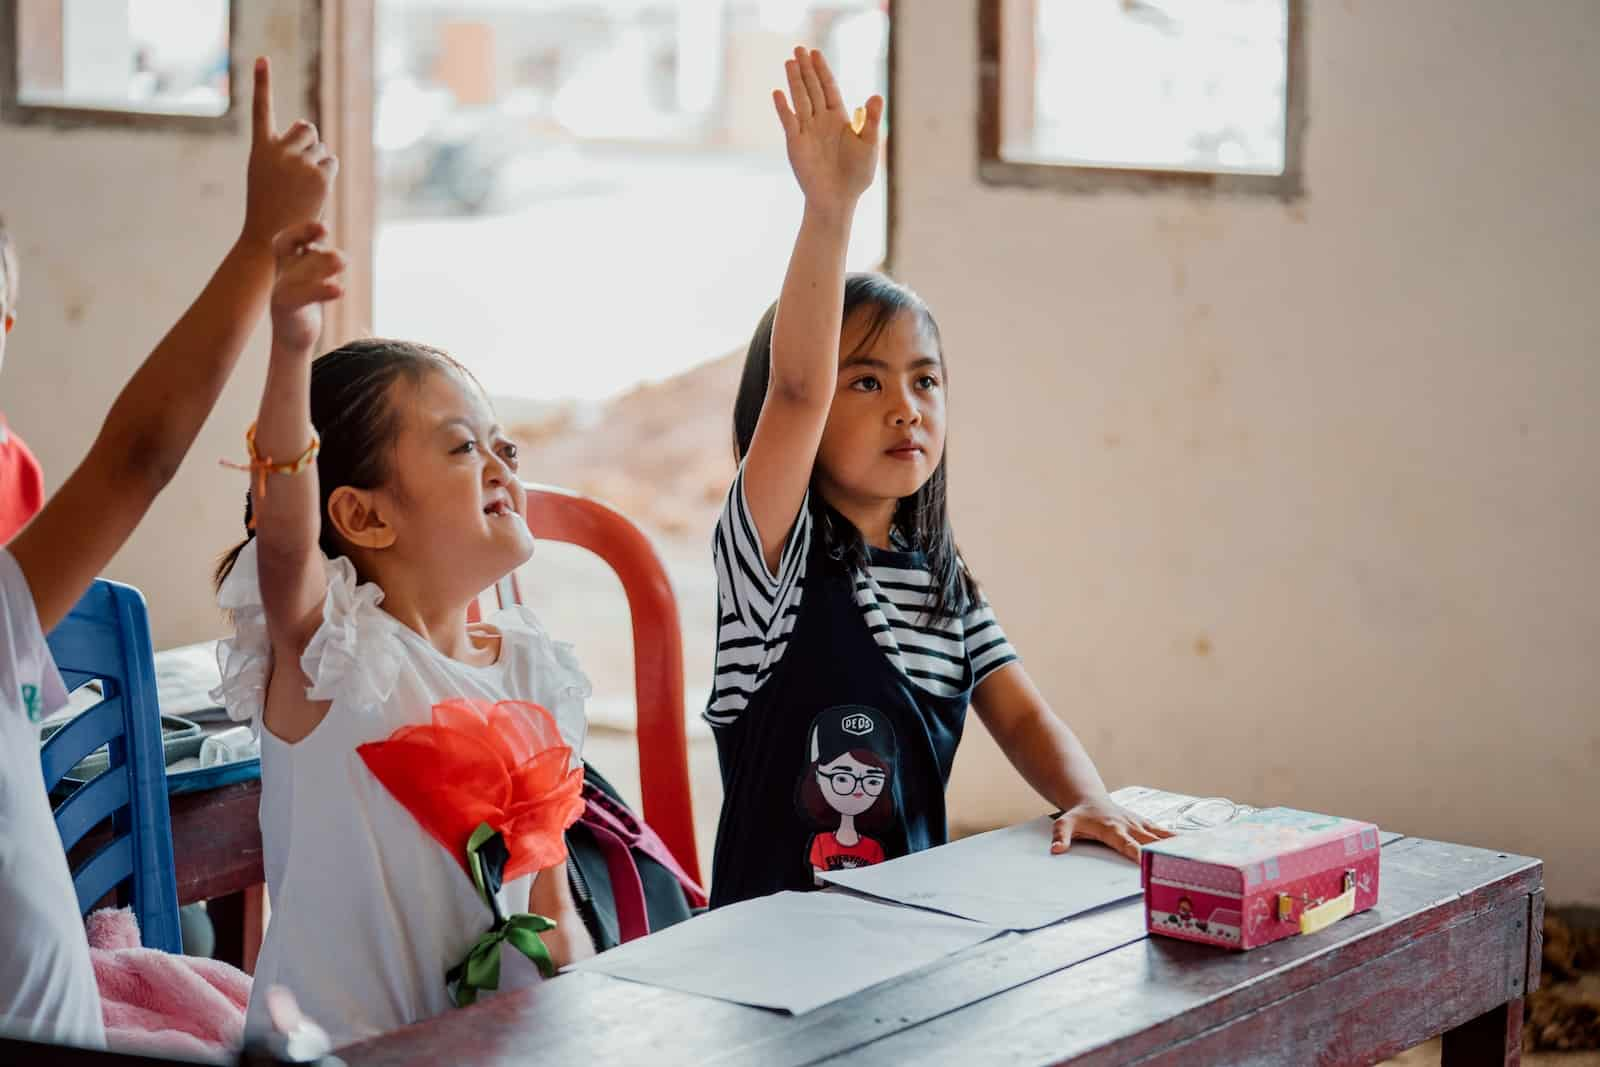 A photo of a girl with Apert Syndrome, raising her hand at school.